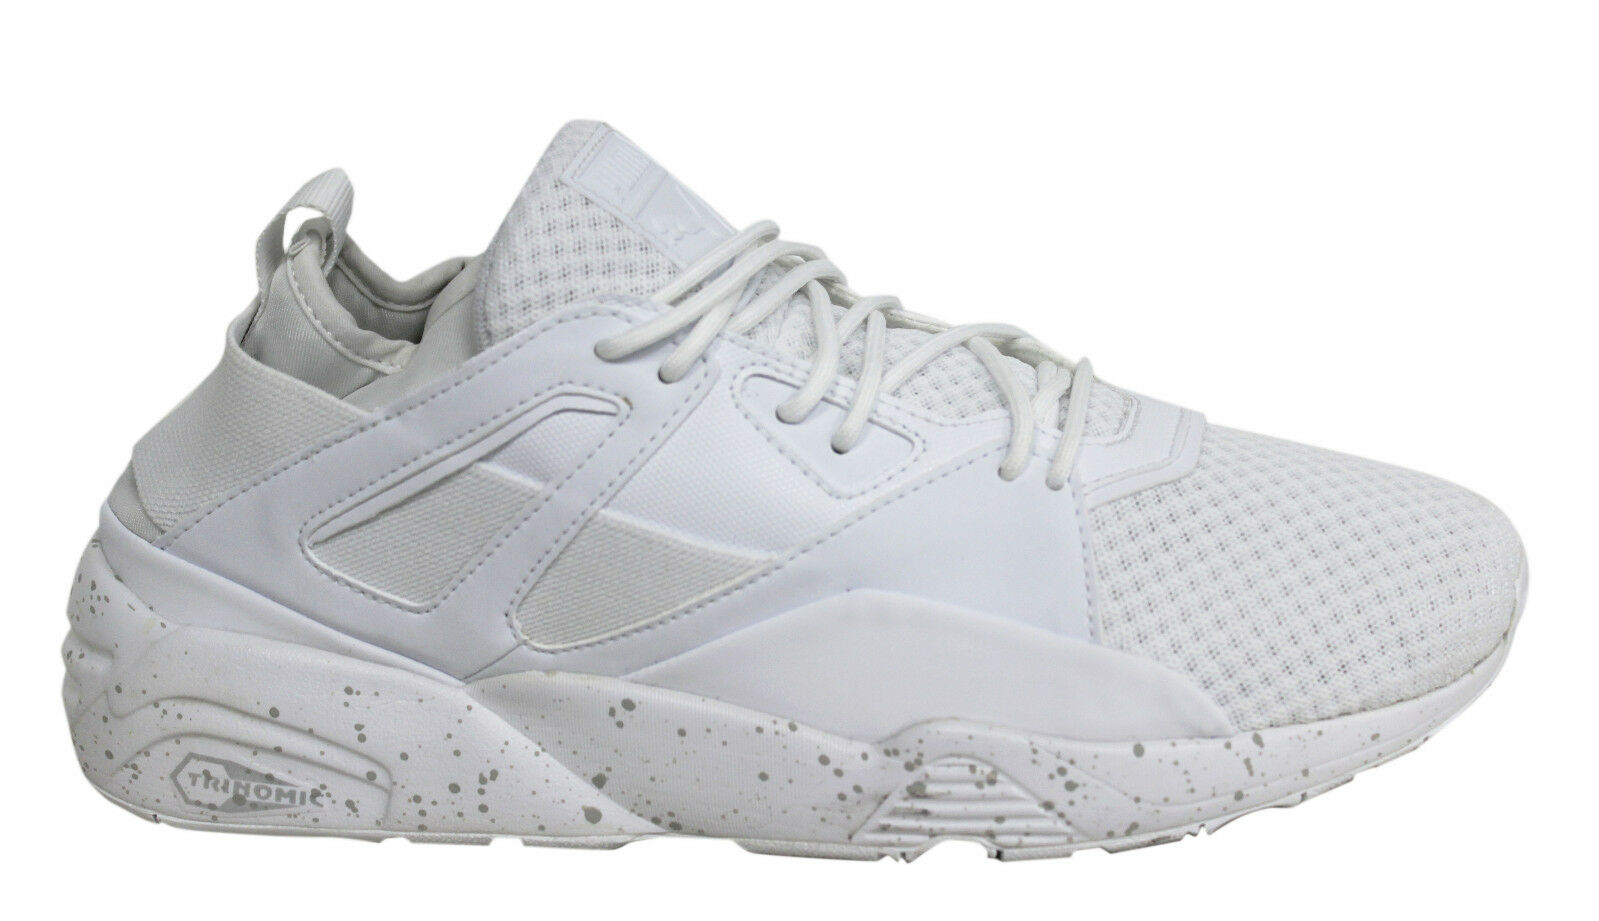 Puma Blaze Of Glory Sock Lace Up White Mens M13 Textile Trainers 362520 02 M13 Mens 3935a6